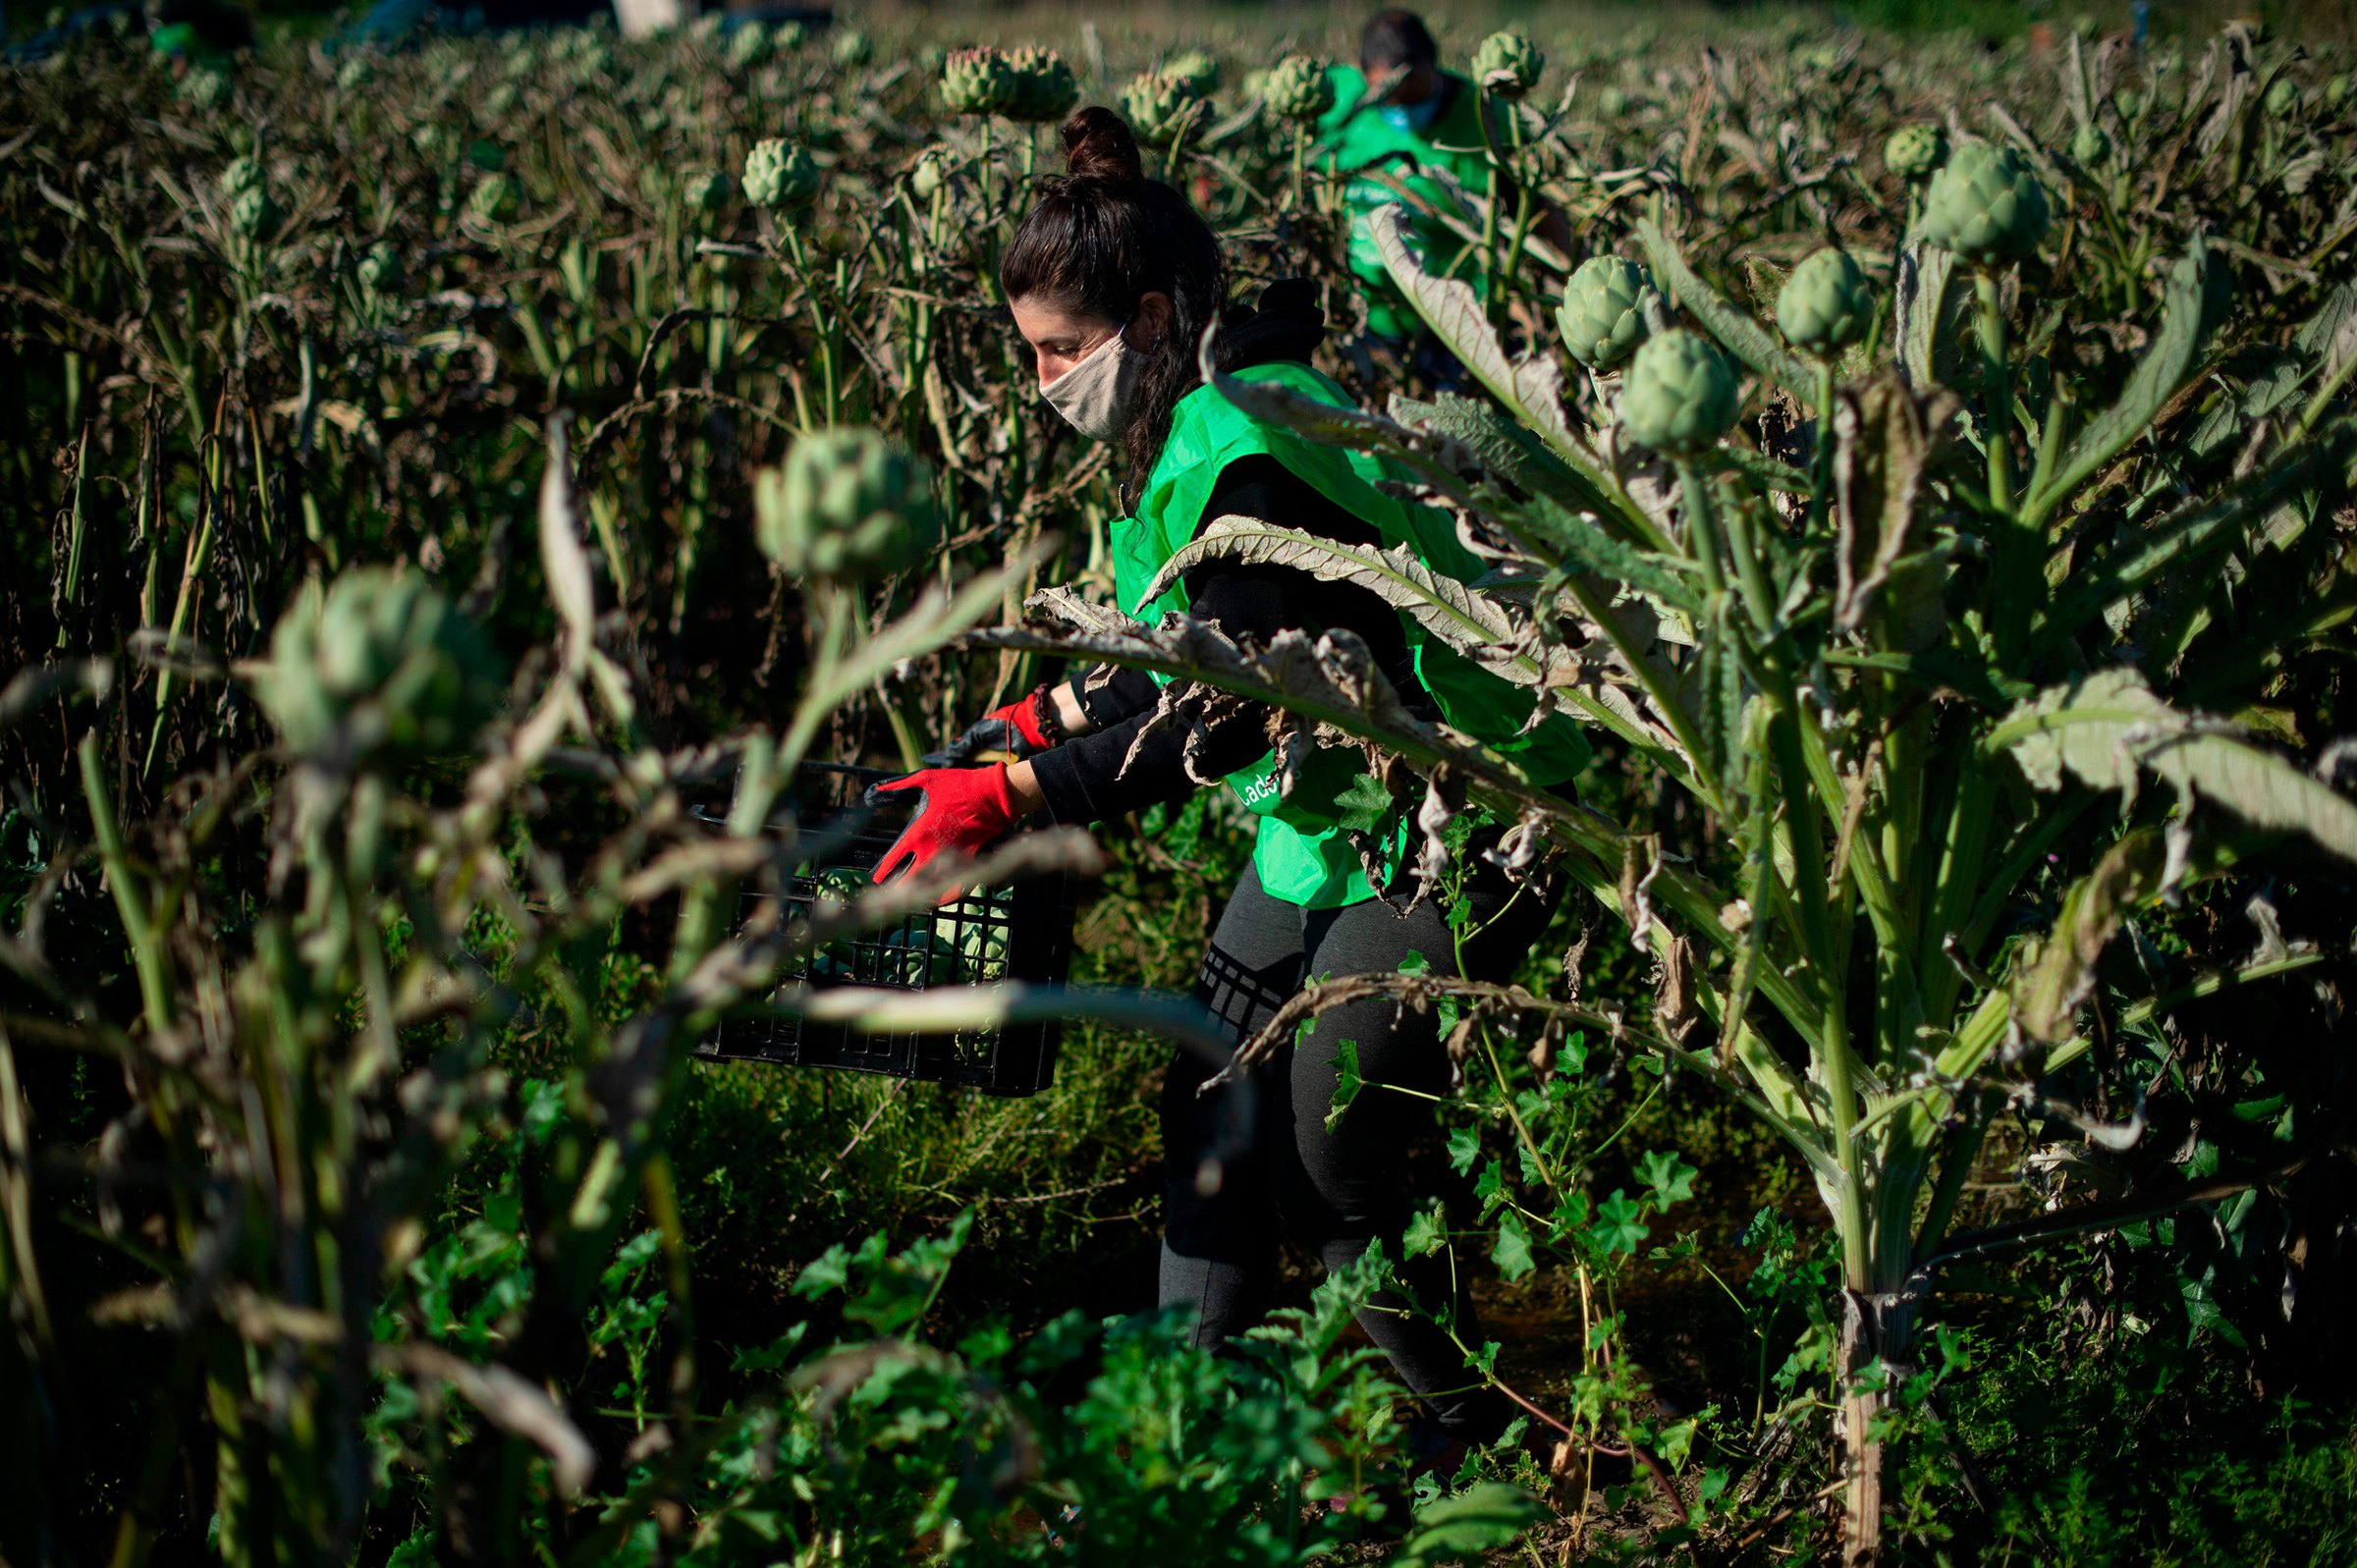 A volunteer in the non-profit organization Espigoladors works on an artichoke field in El Prat del Llobregat, Spain, to reduce food waste by harvesting surplus fruits for soup kitchens in April